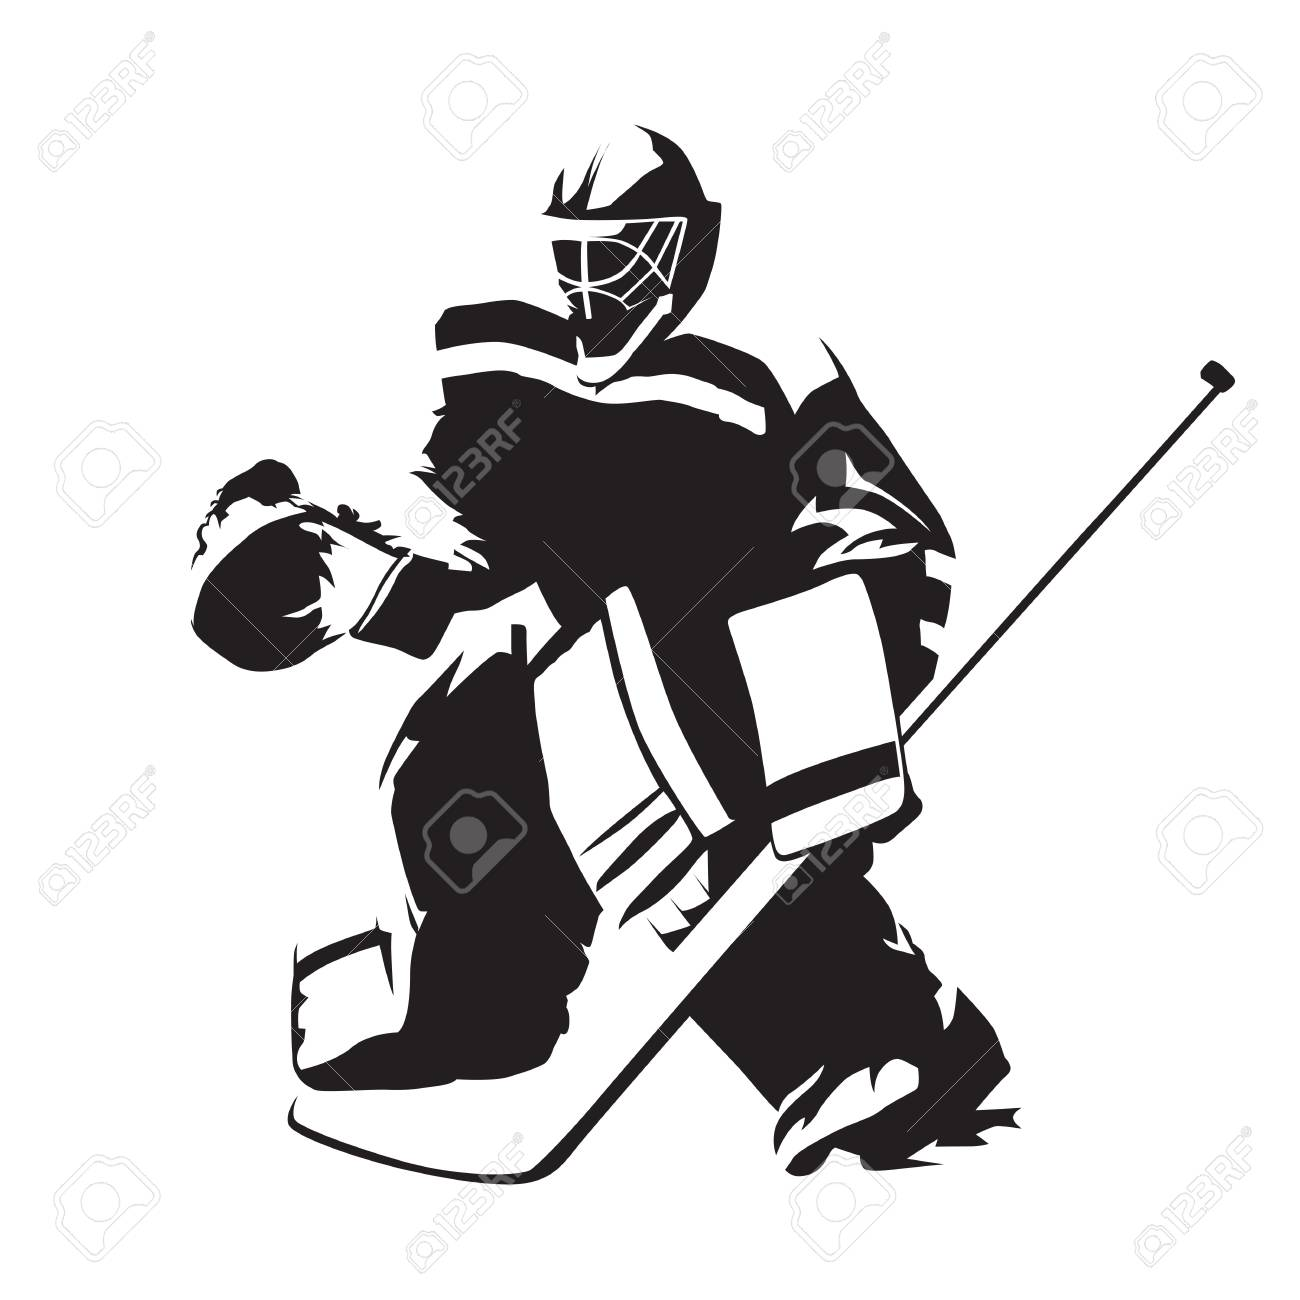 Ice Hockey Goalie Abstract Vector Silhouette Illustration Royalty